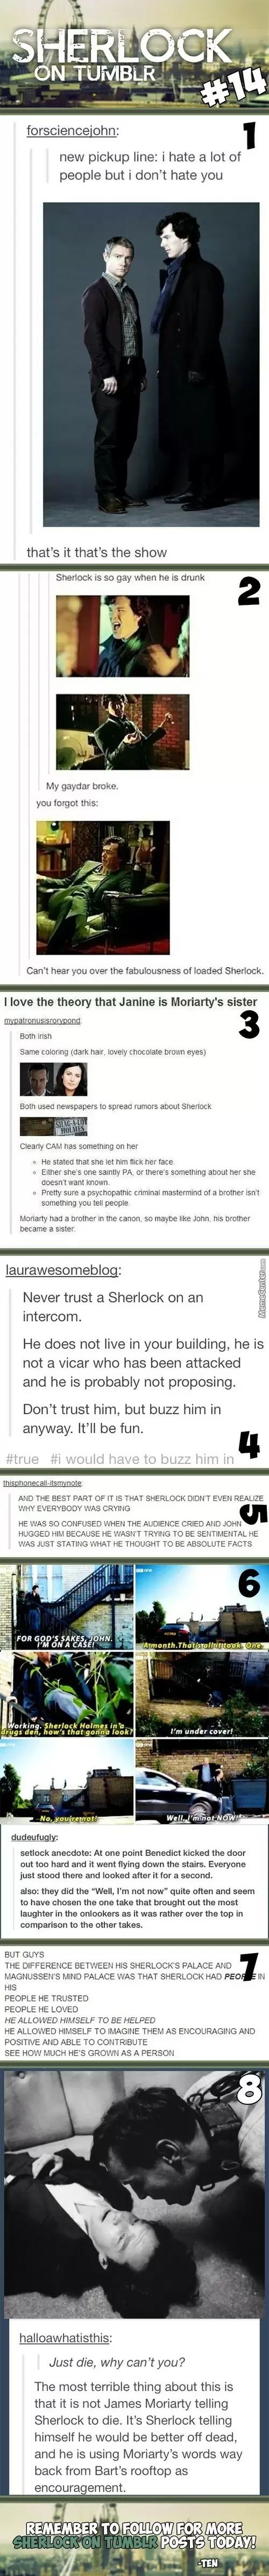 Sherlock On Tumblr #14